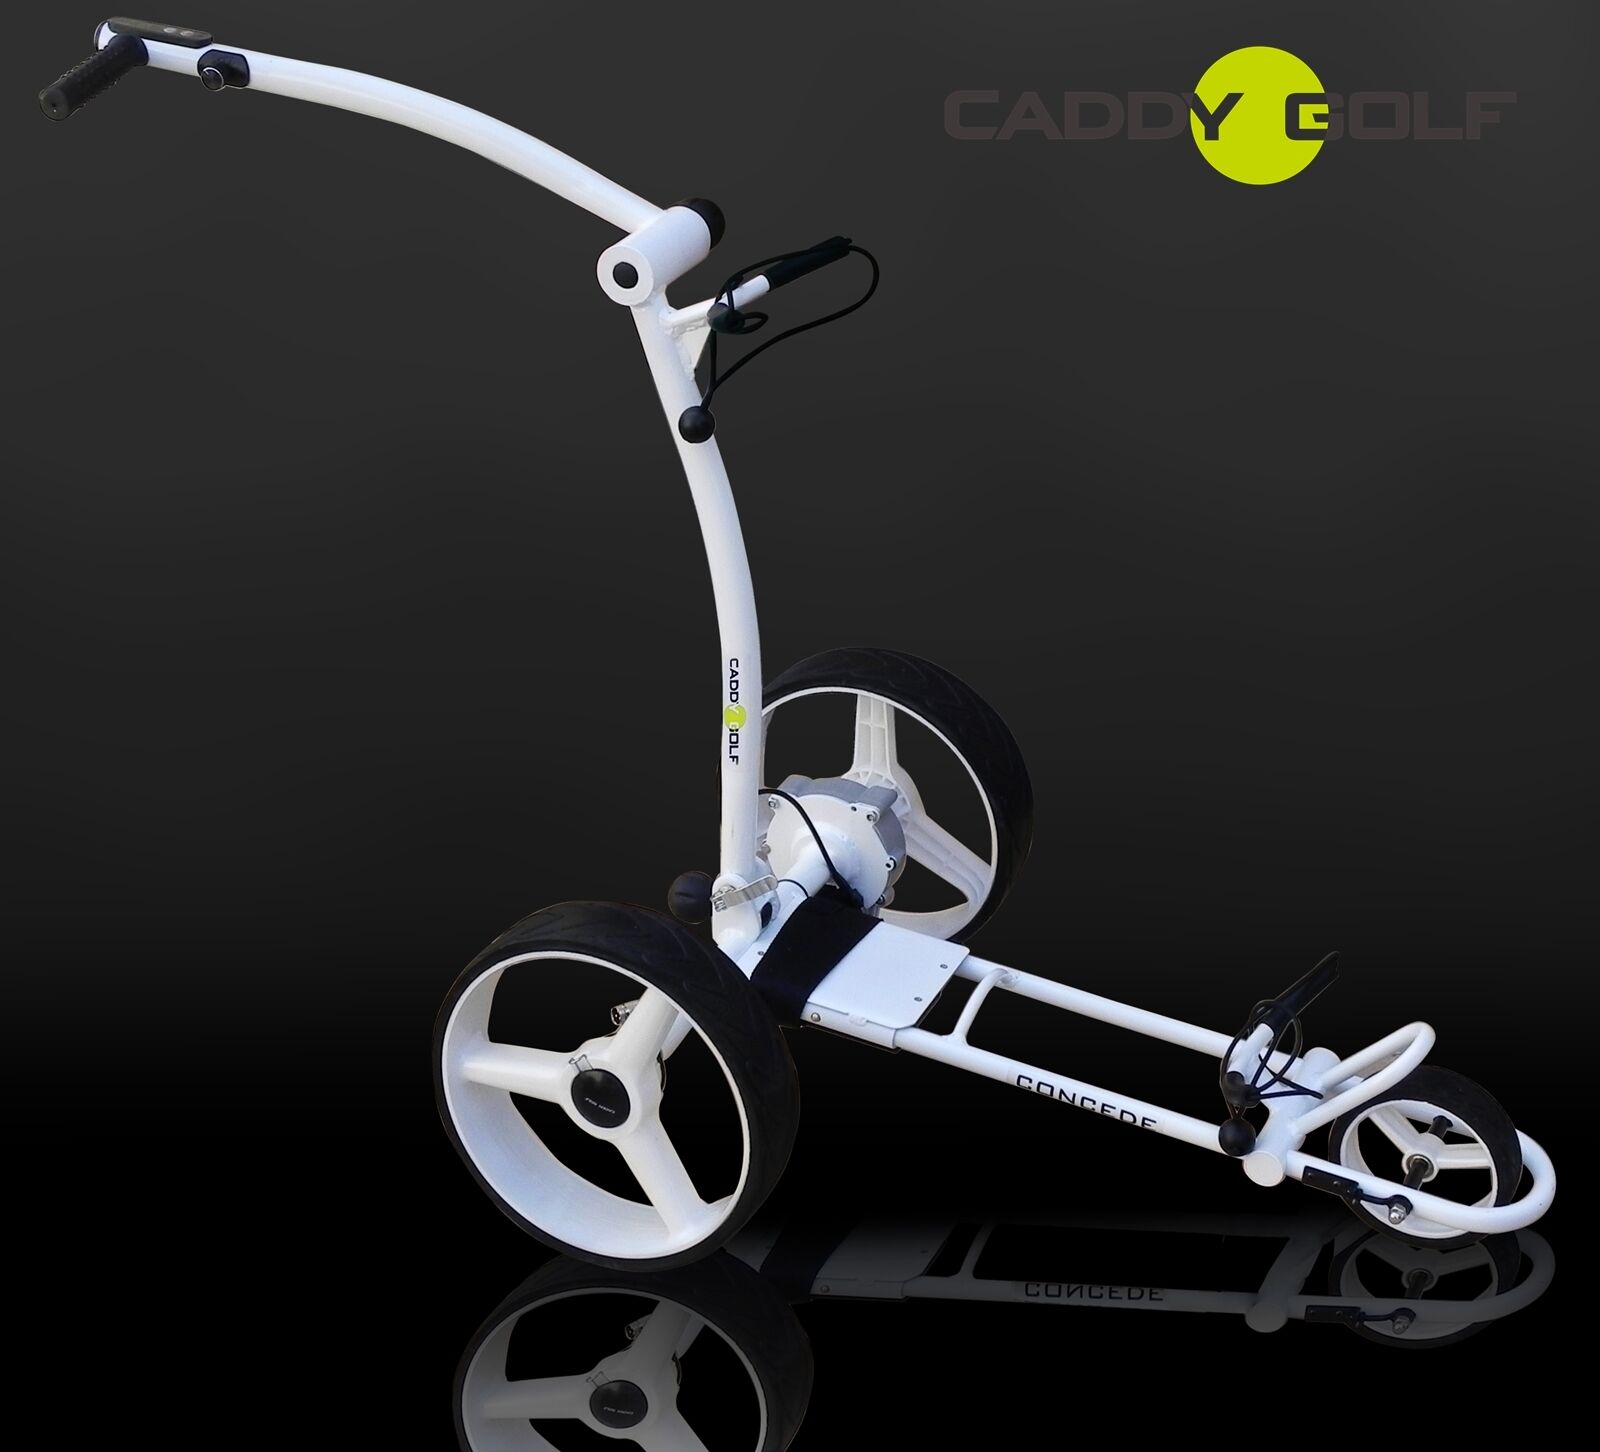 caddy golf concede elektro trolley weiss distanztimer. Black Bedroom Furniture Sets. Home Design Ideas